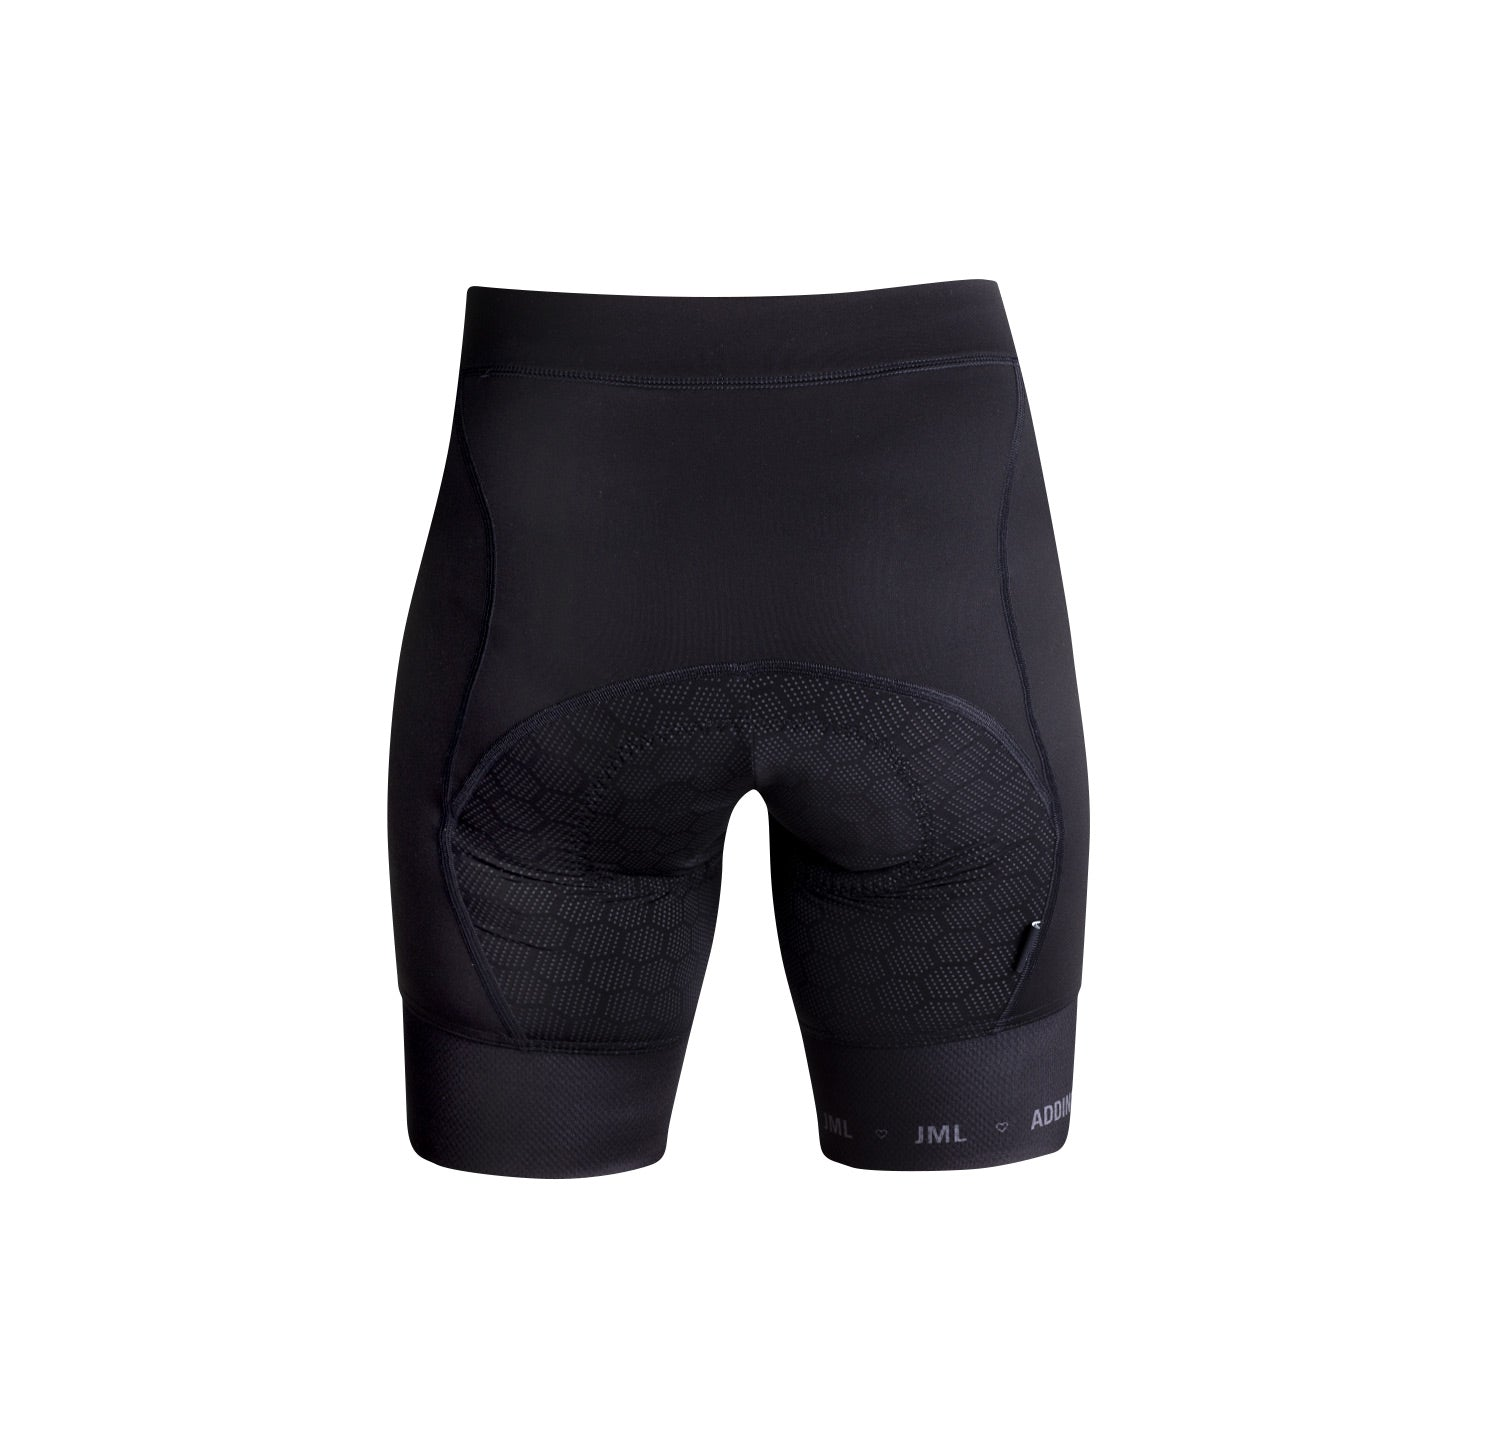 JML One Shorts WMN - Jerseys Made with Love